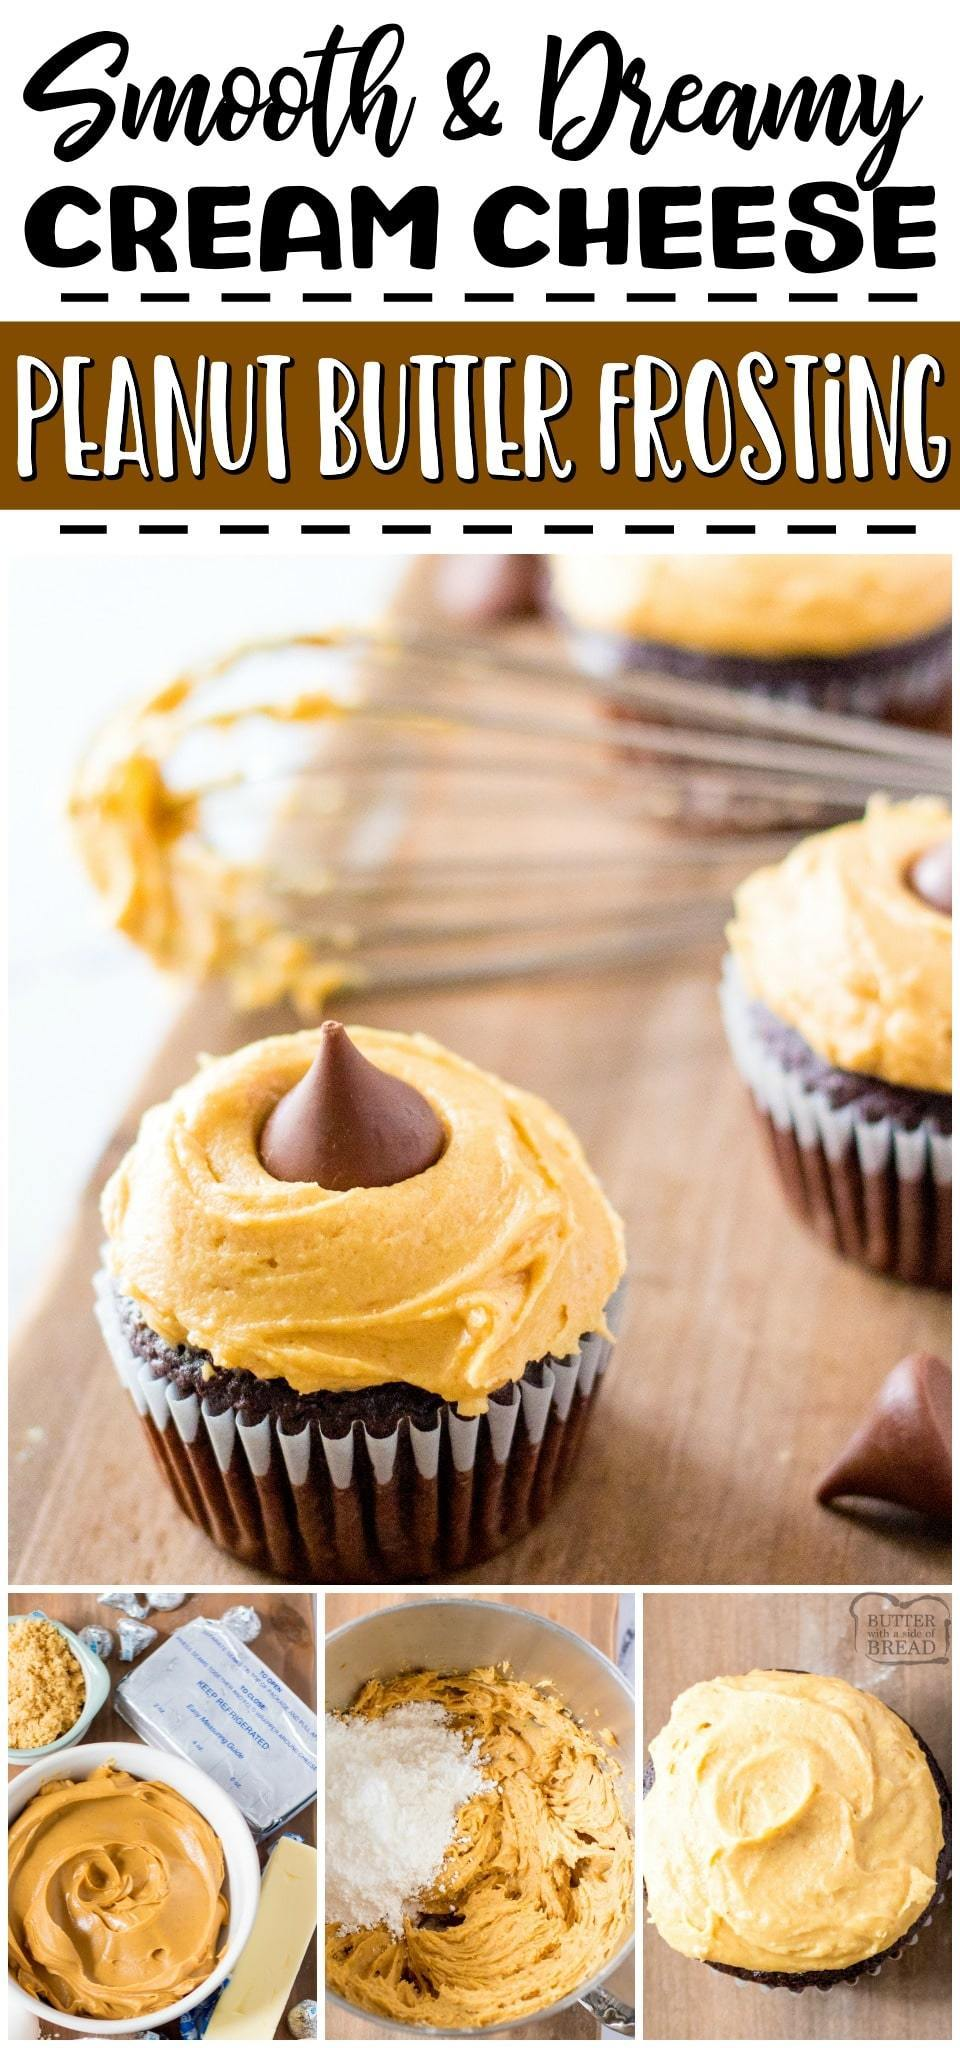 Peanut butter cream cheese frosting is a salty sweet, flavorful frosting recipe that you're going to love! Cream Cheese & peanut butter combine for a deliciously fluffy, smooth peanut butter frosting that is perfect on cupcakes, cakes, cookies & more!